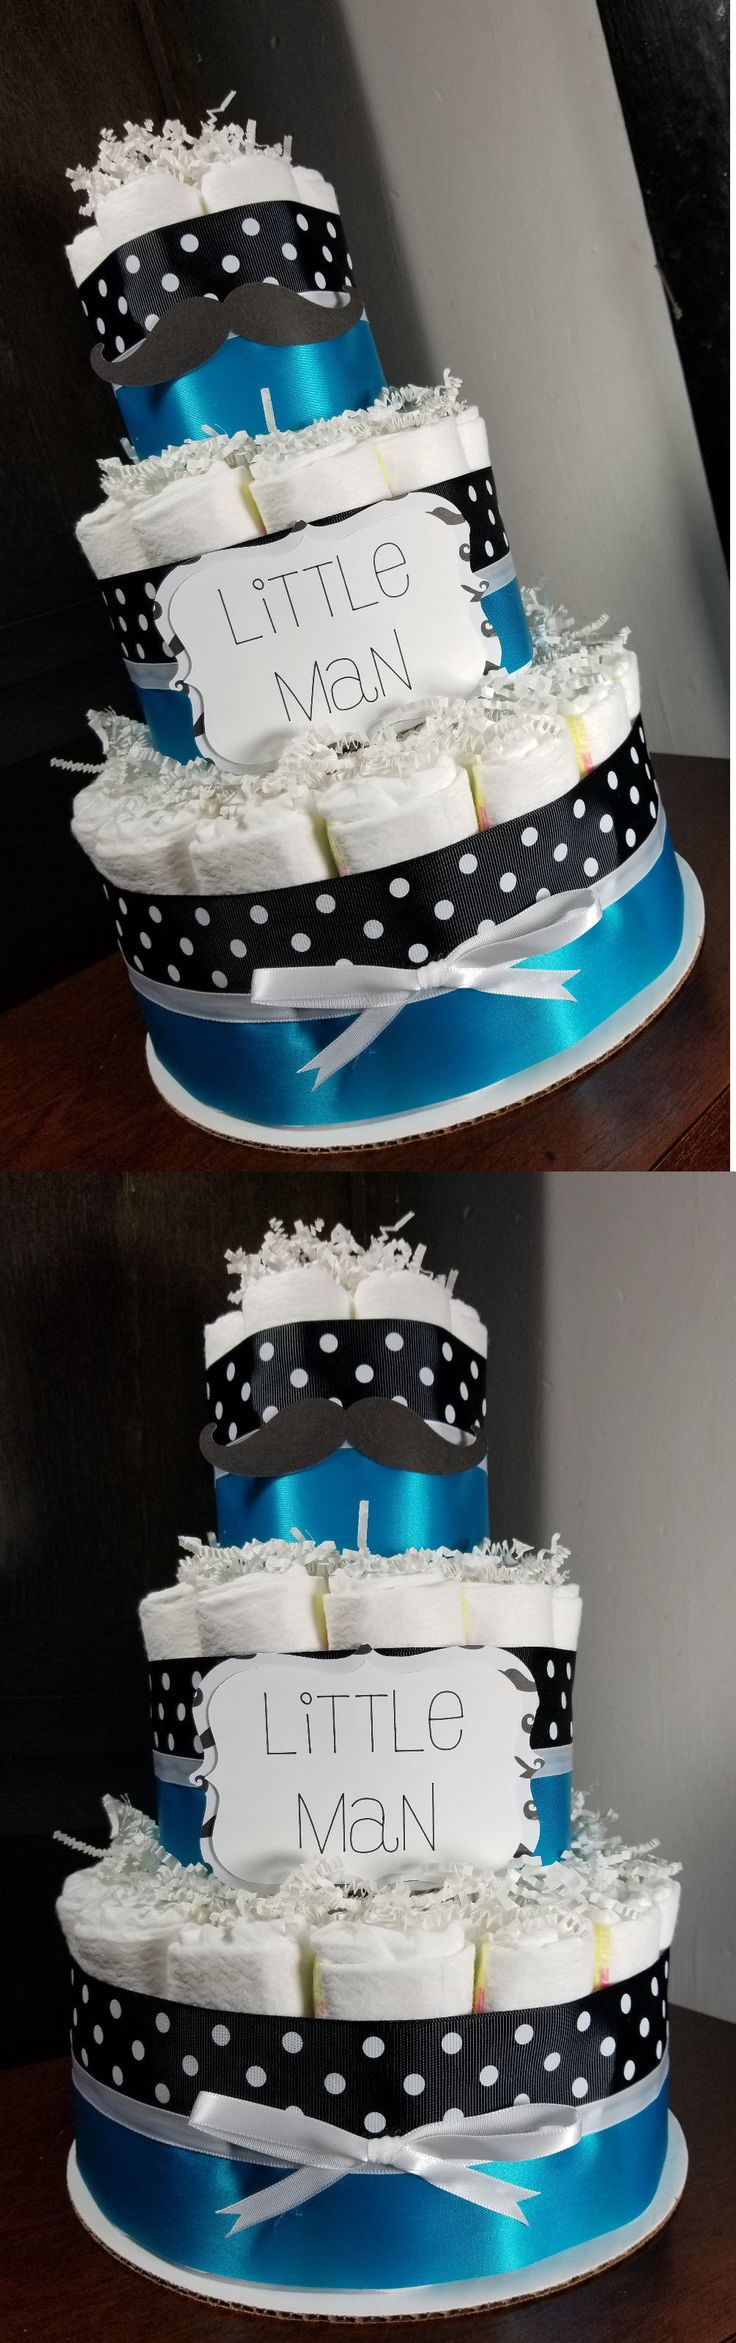 Diaper Cakes 117018: 3 Tier Diaper Cake - Little Man Mustache Theme Black And Blue Baby Shower -> BUY IT NOW ONLY: $43 on eBay!